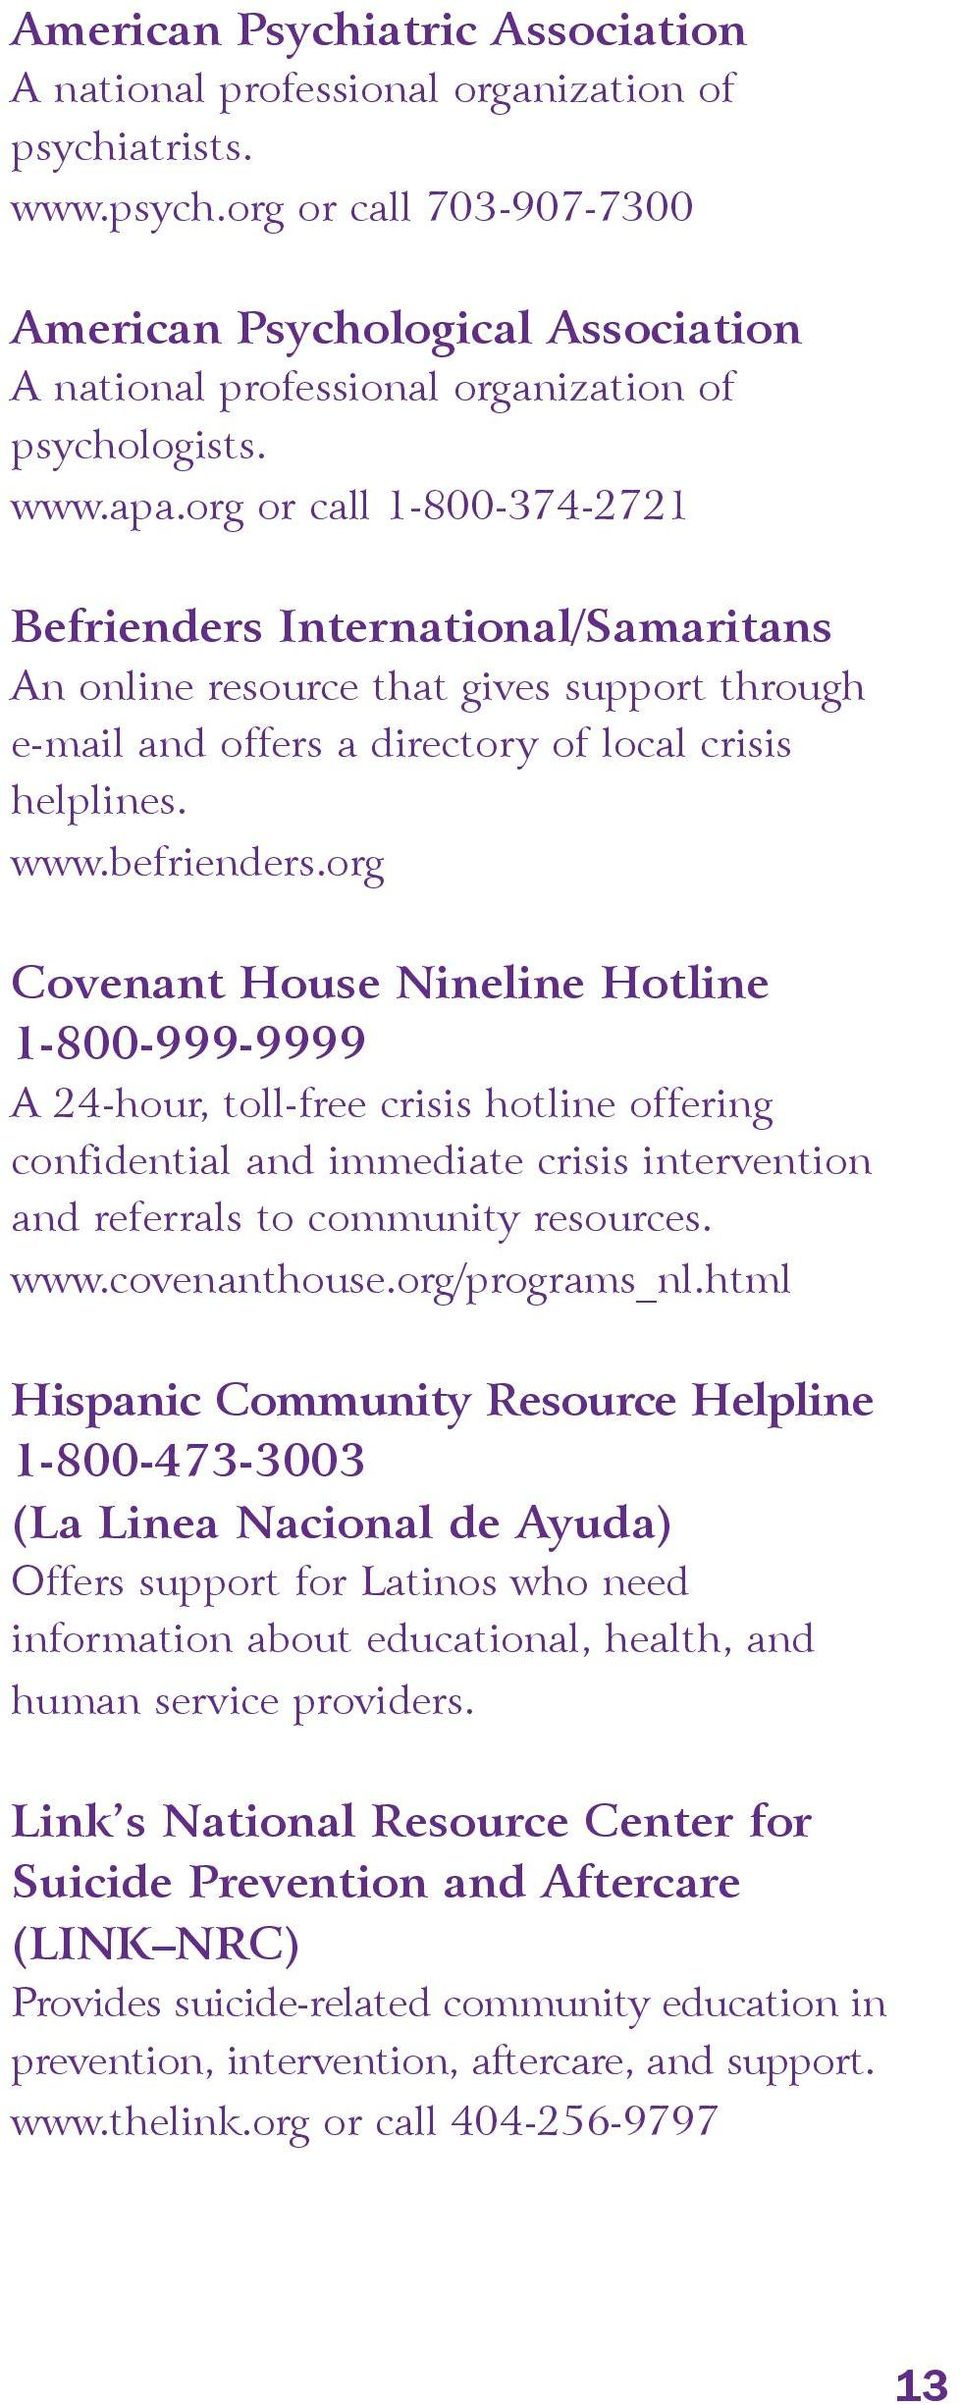 org Covenant House Nineline Hotline 1-800-999-9999 A 24-hour, toll-free crisis hotline offering confidential and immediate crisis intervention and referrals to community resources. www.covenanthouse.